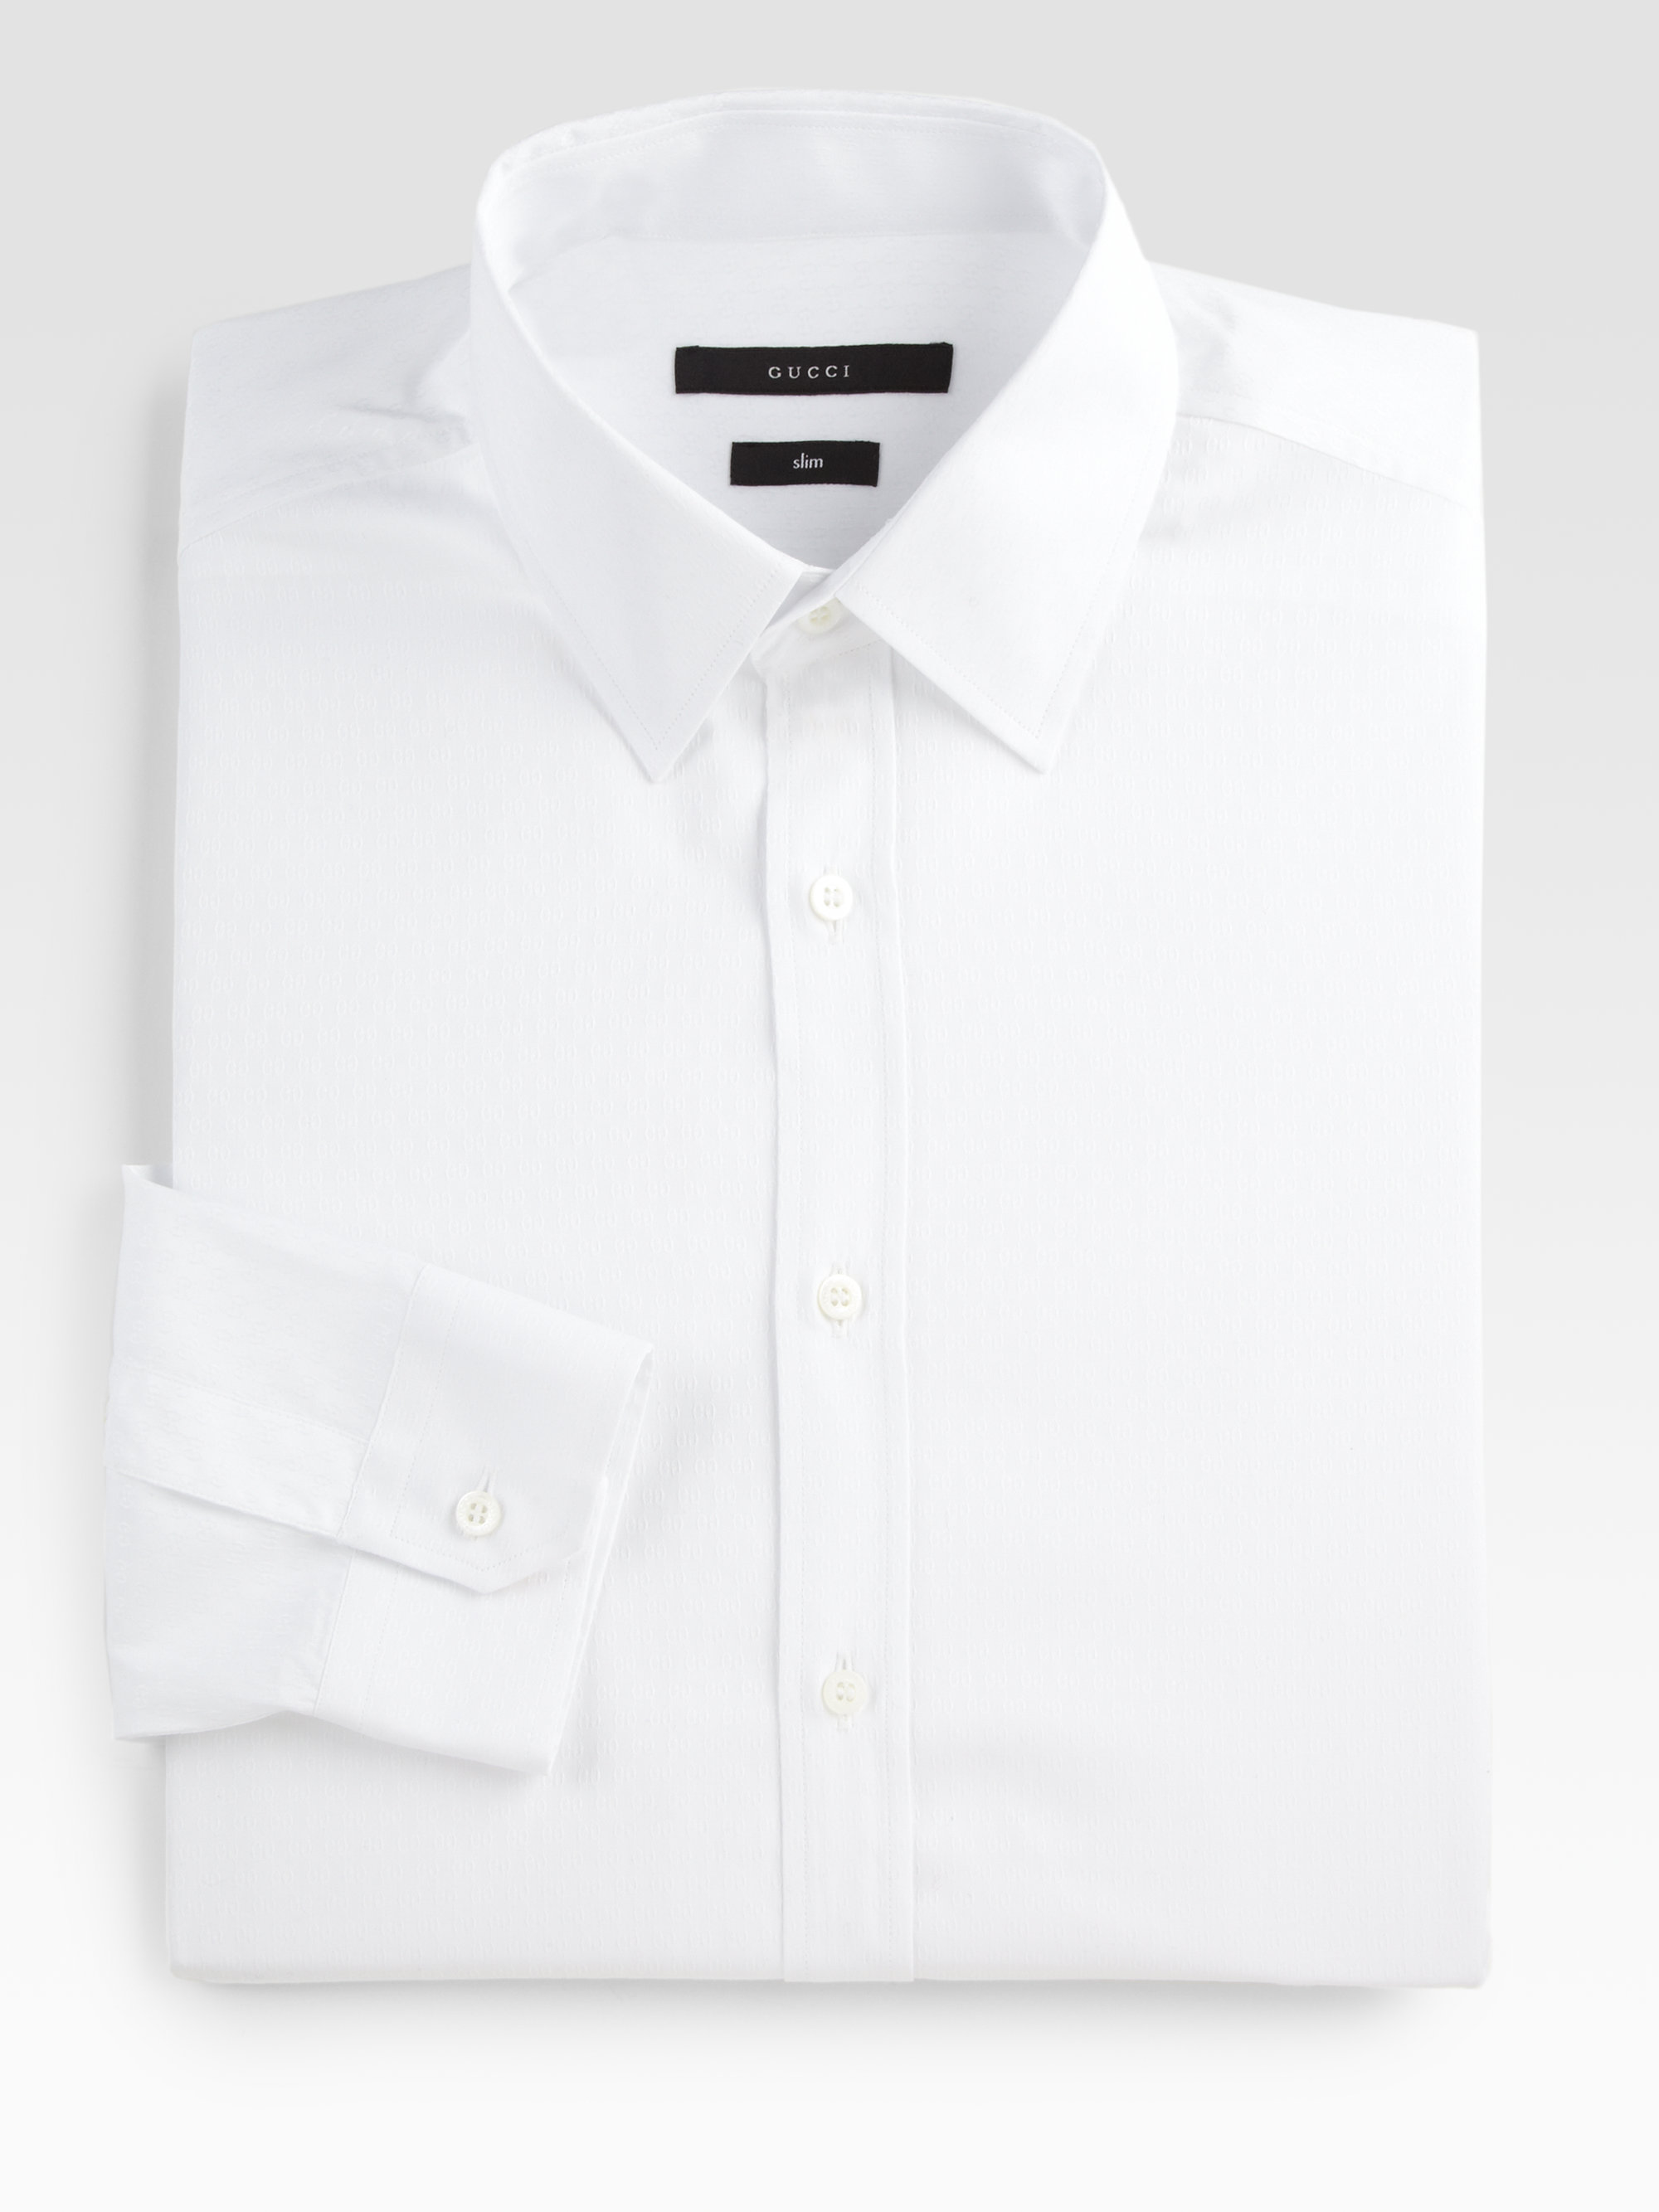 gucci dress shirts for men. gucci solid dress shirt in white for men lyst shirts